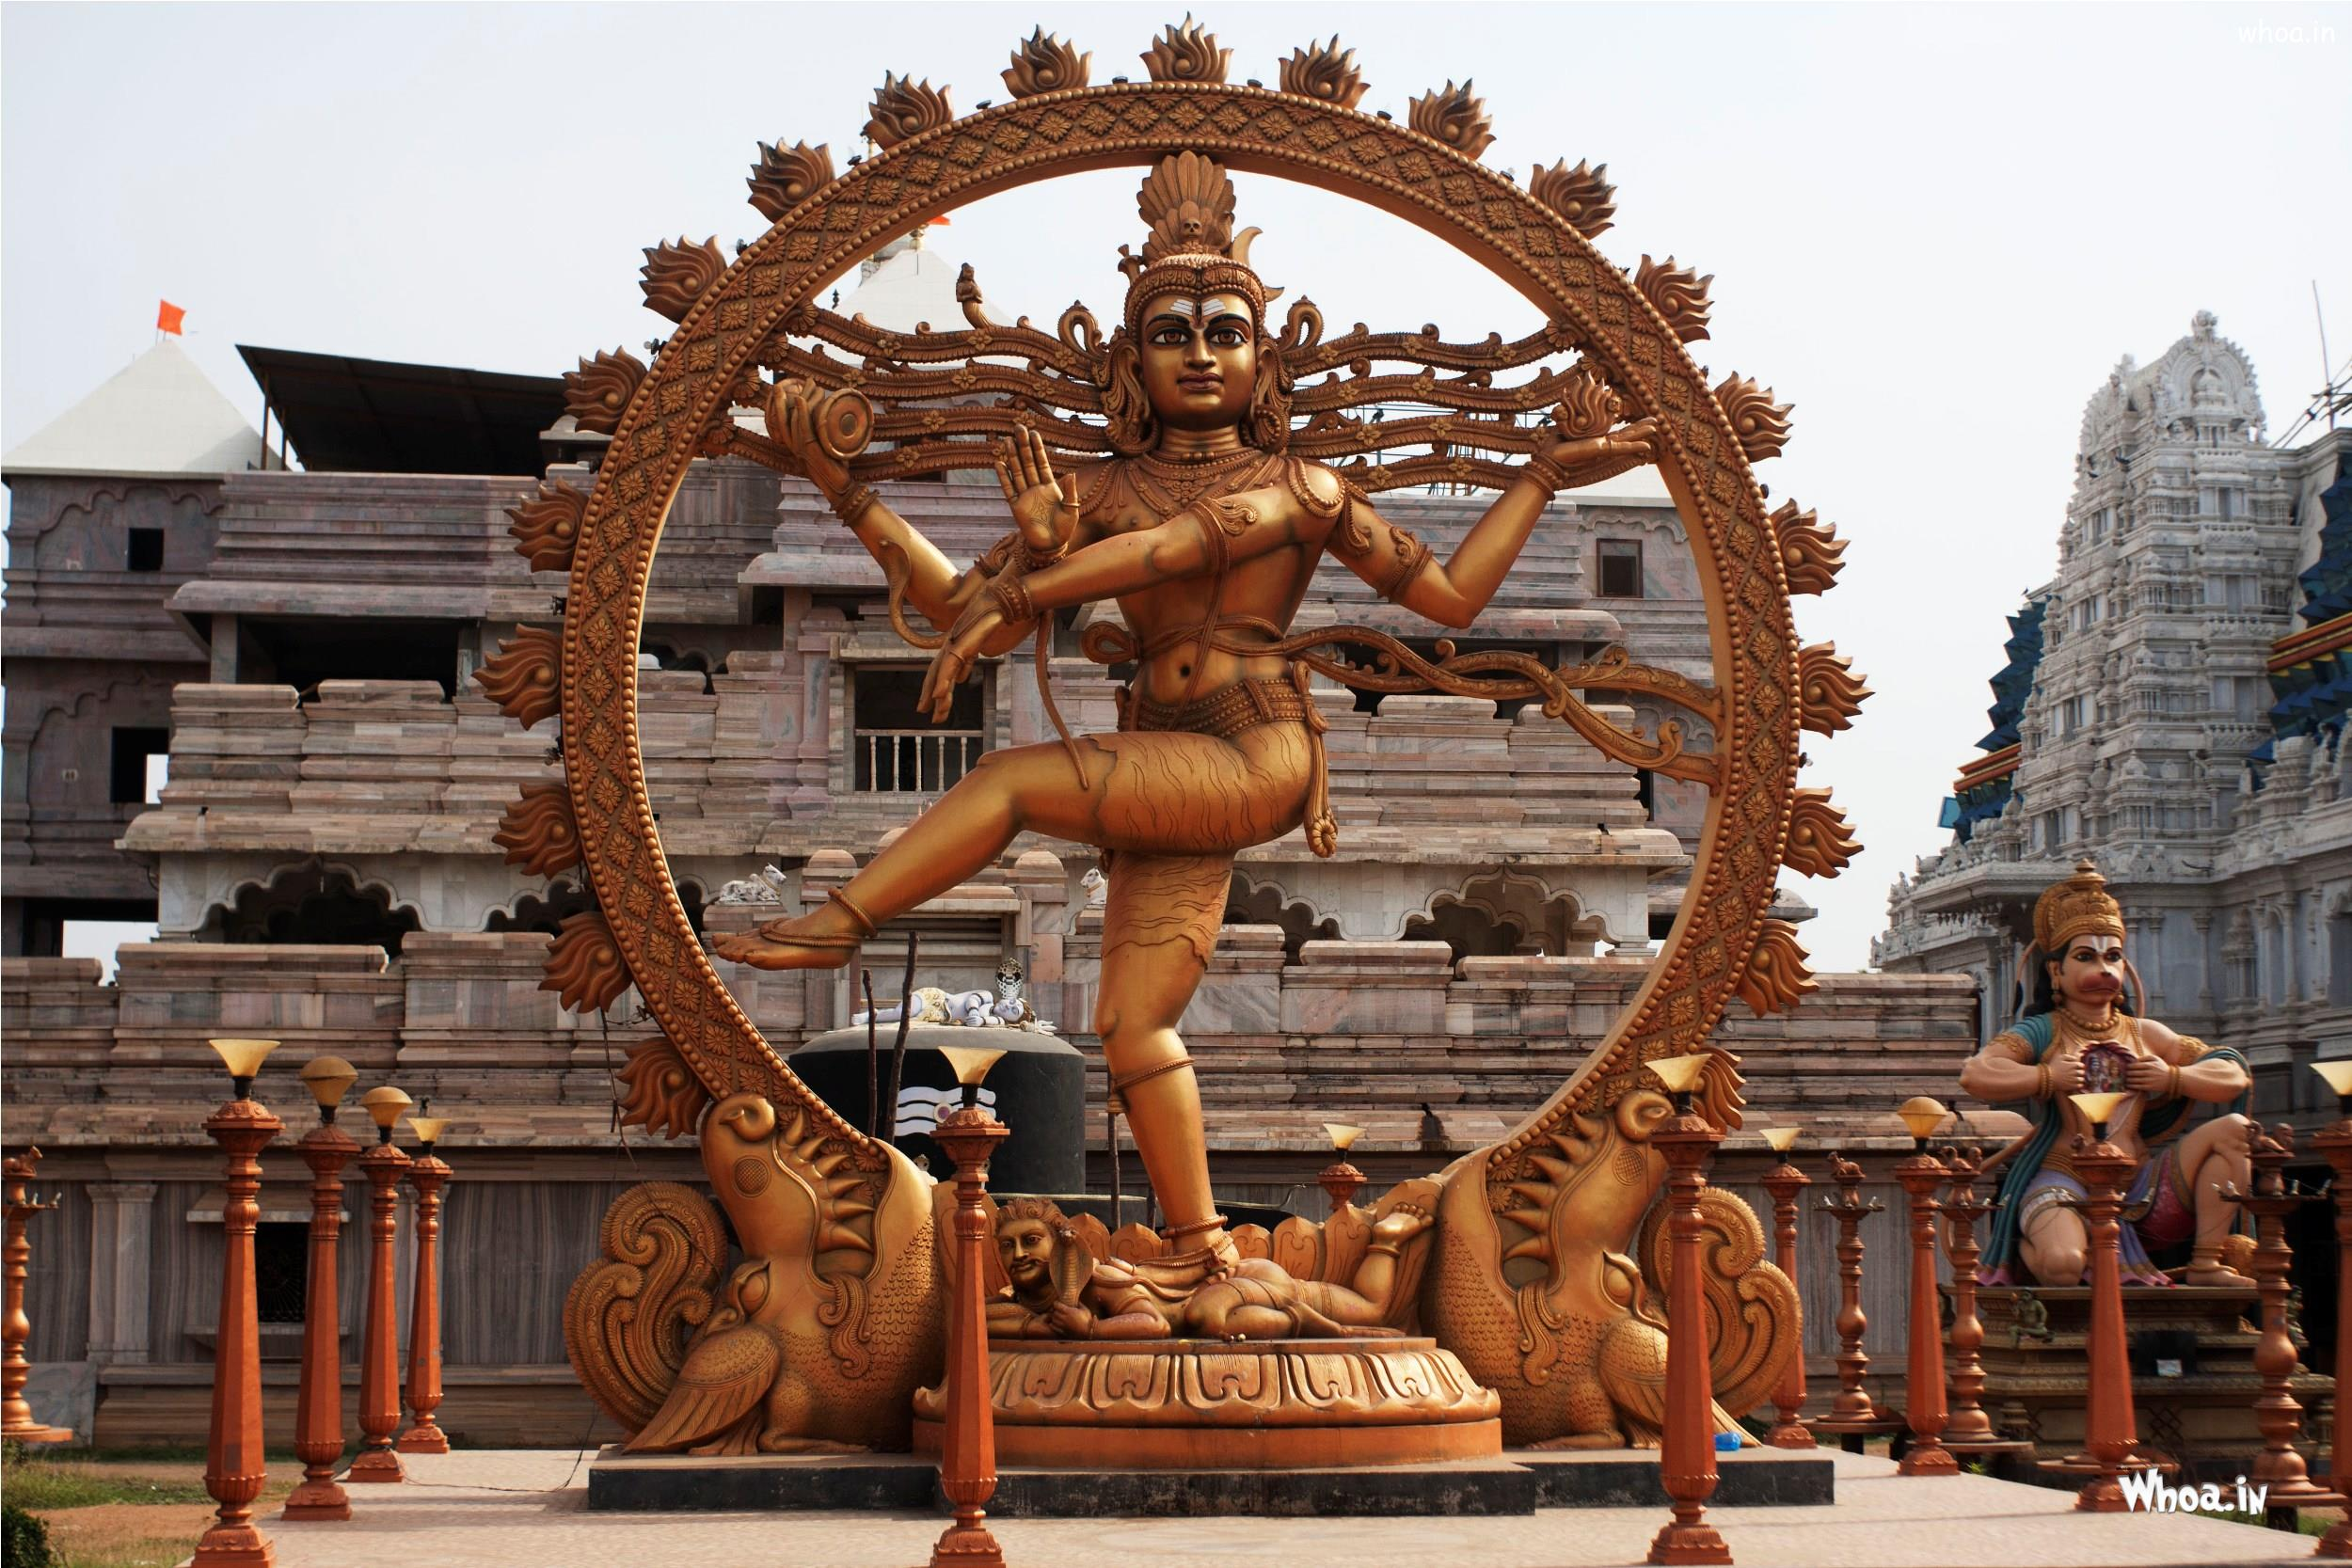 Beautiful Wallpaper Lord Nataraja - lord-nataraja-dancing-statue-hd-wallpaper  Photograph_428798.in/download/lord-nataraja-dancing-statue-hd-wallpaper